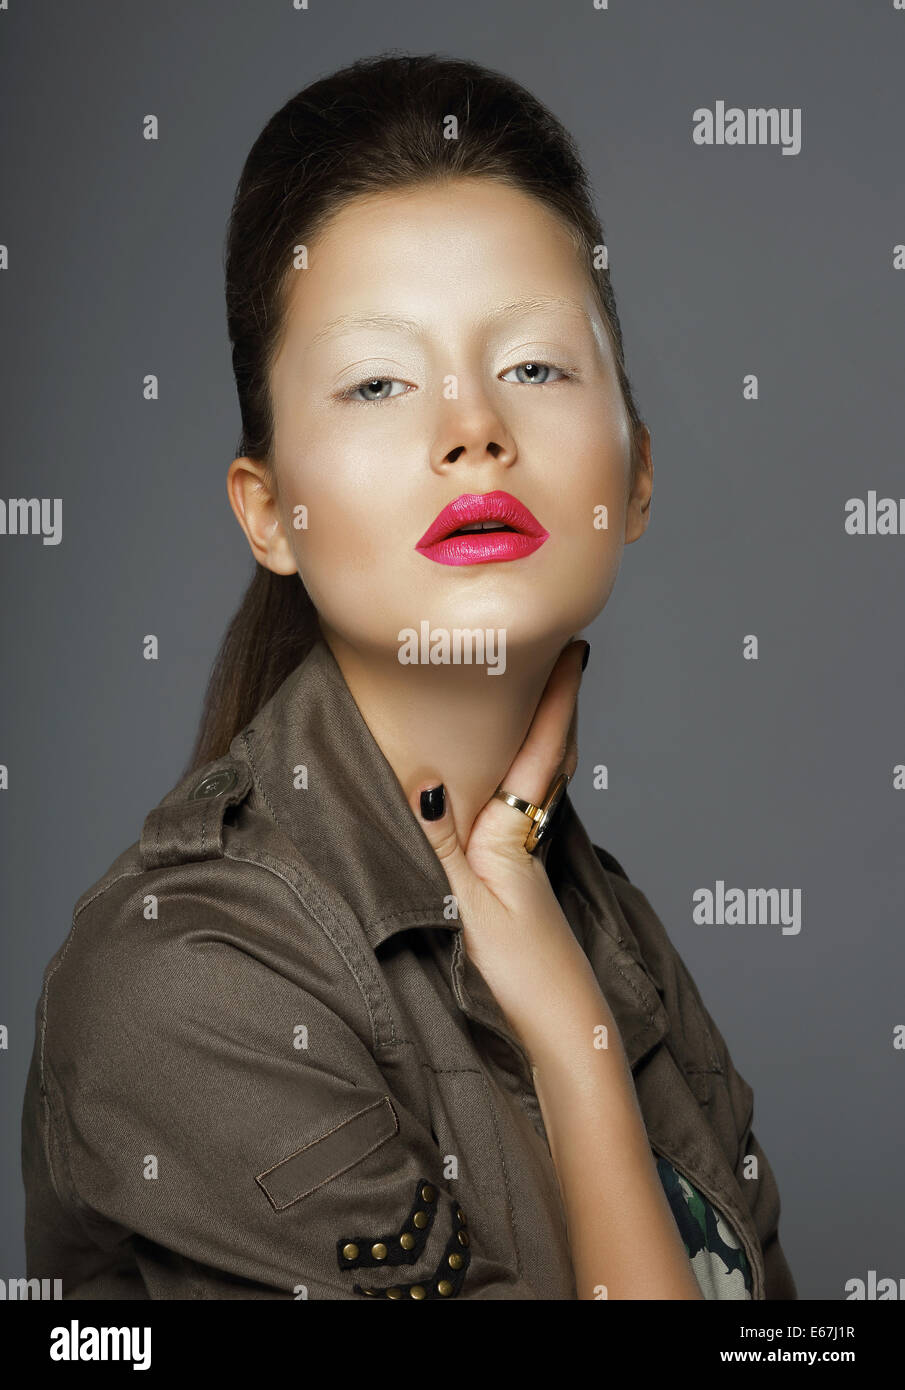 Elegance. Asian Woman with Trendy Makeup - Stock Image